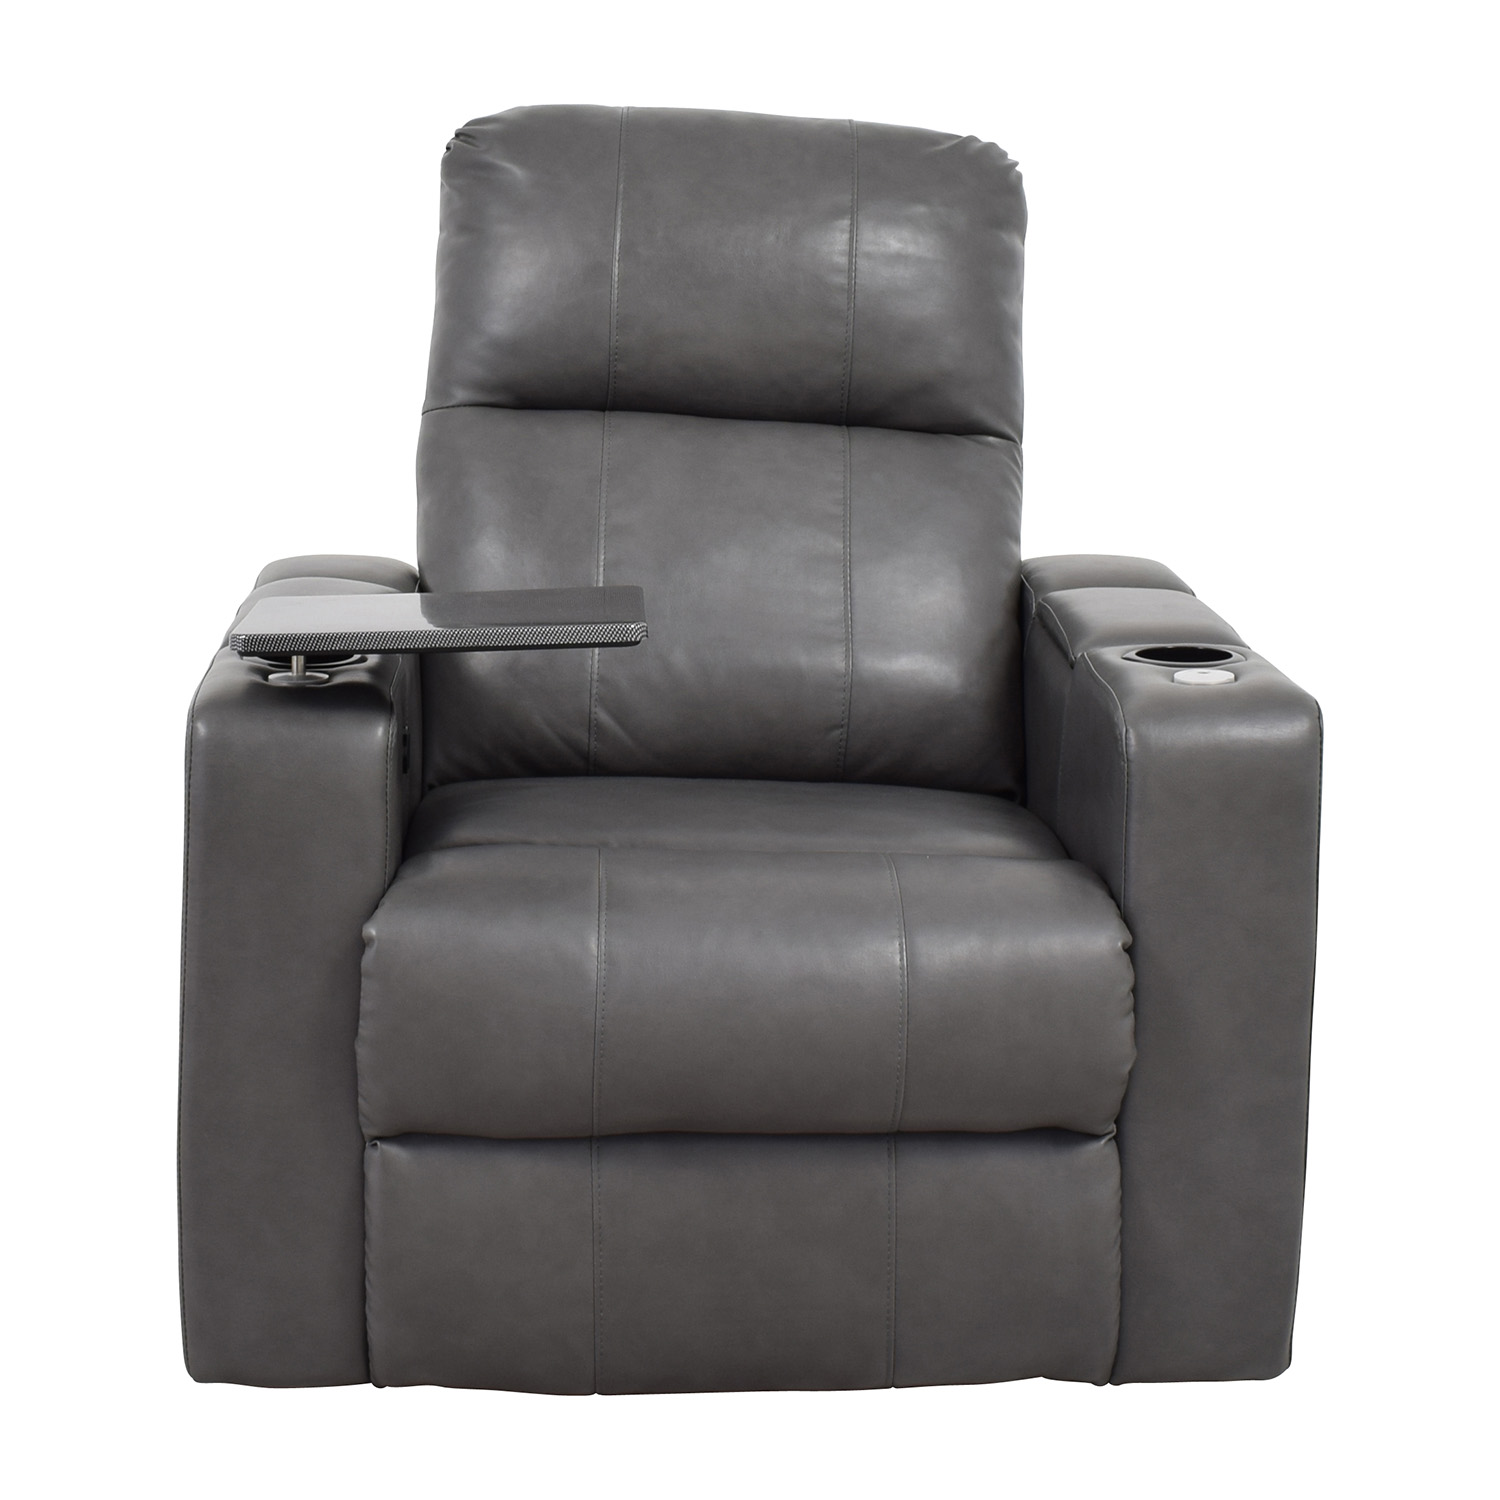 Remarkable 90 Off Grey Leather Recliner With Storage And Usb Port Chairs Pabps2019 Chair Design Images Pabps2019Com